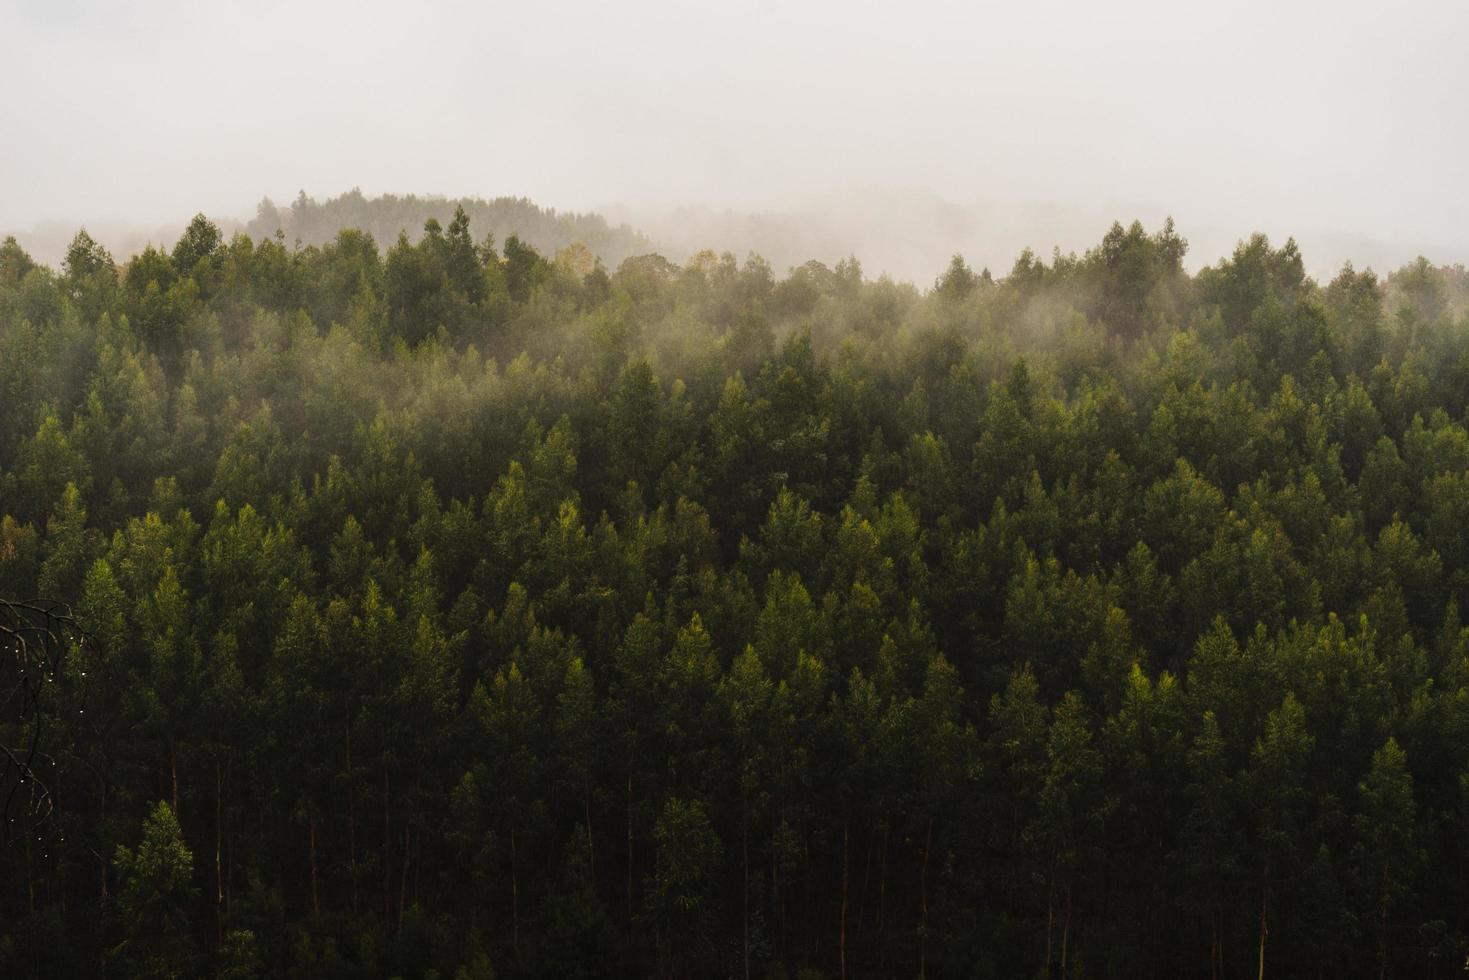 Green forest during foggy day photo